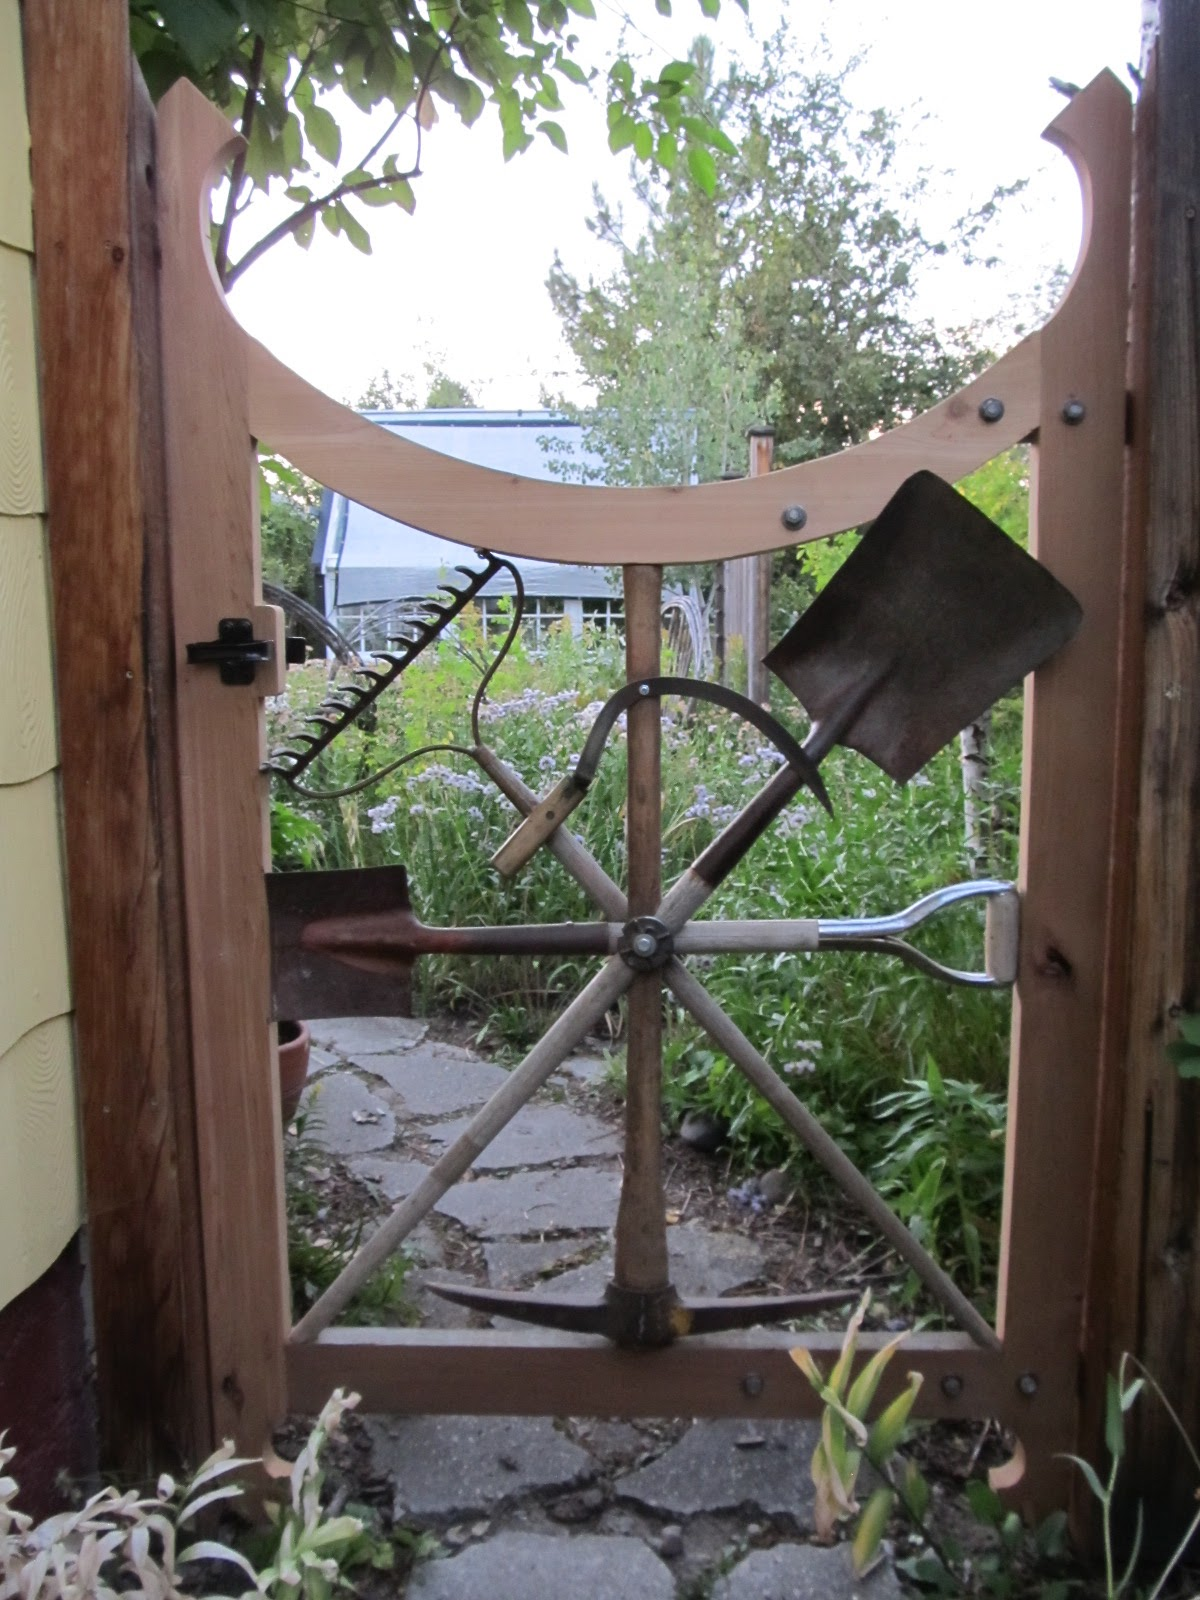 Montana wildlife gardener a repurposed garden tool for Outdoor garden doors